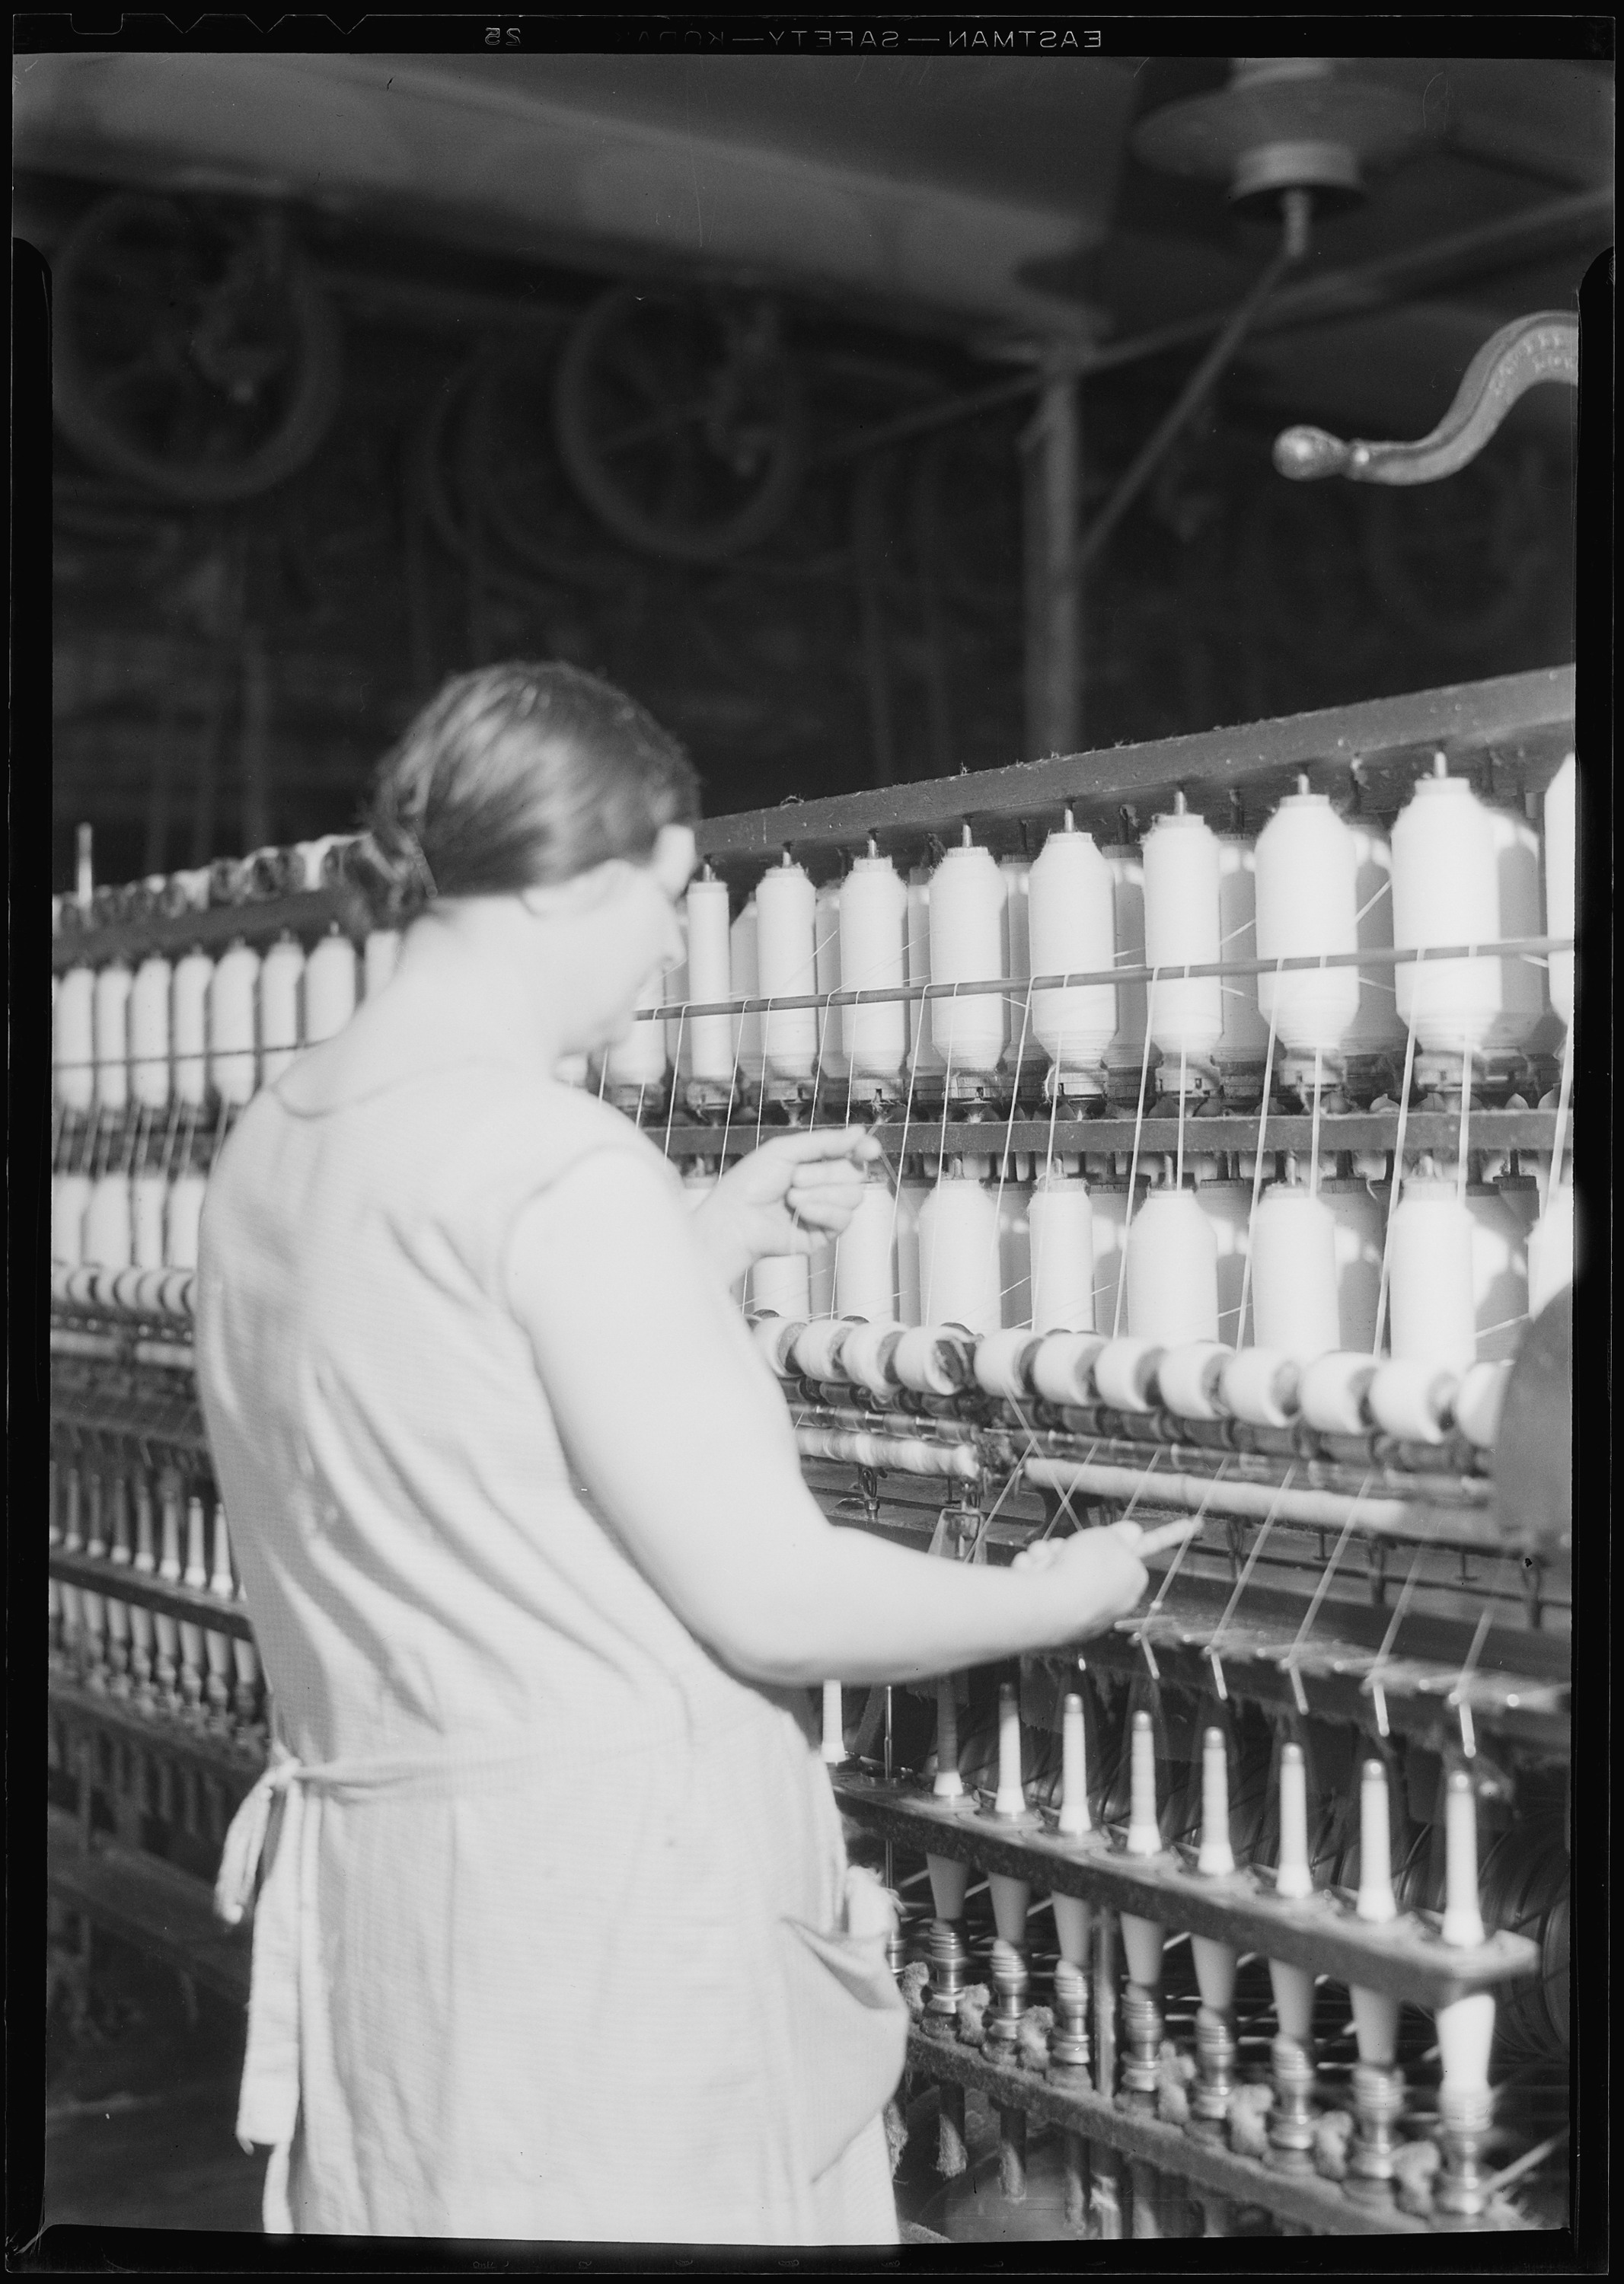 File:Manchester, New Hampshire - Textiles. Pacific Mills. Spinning ...